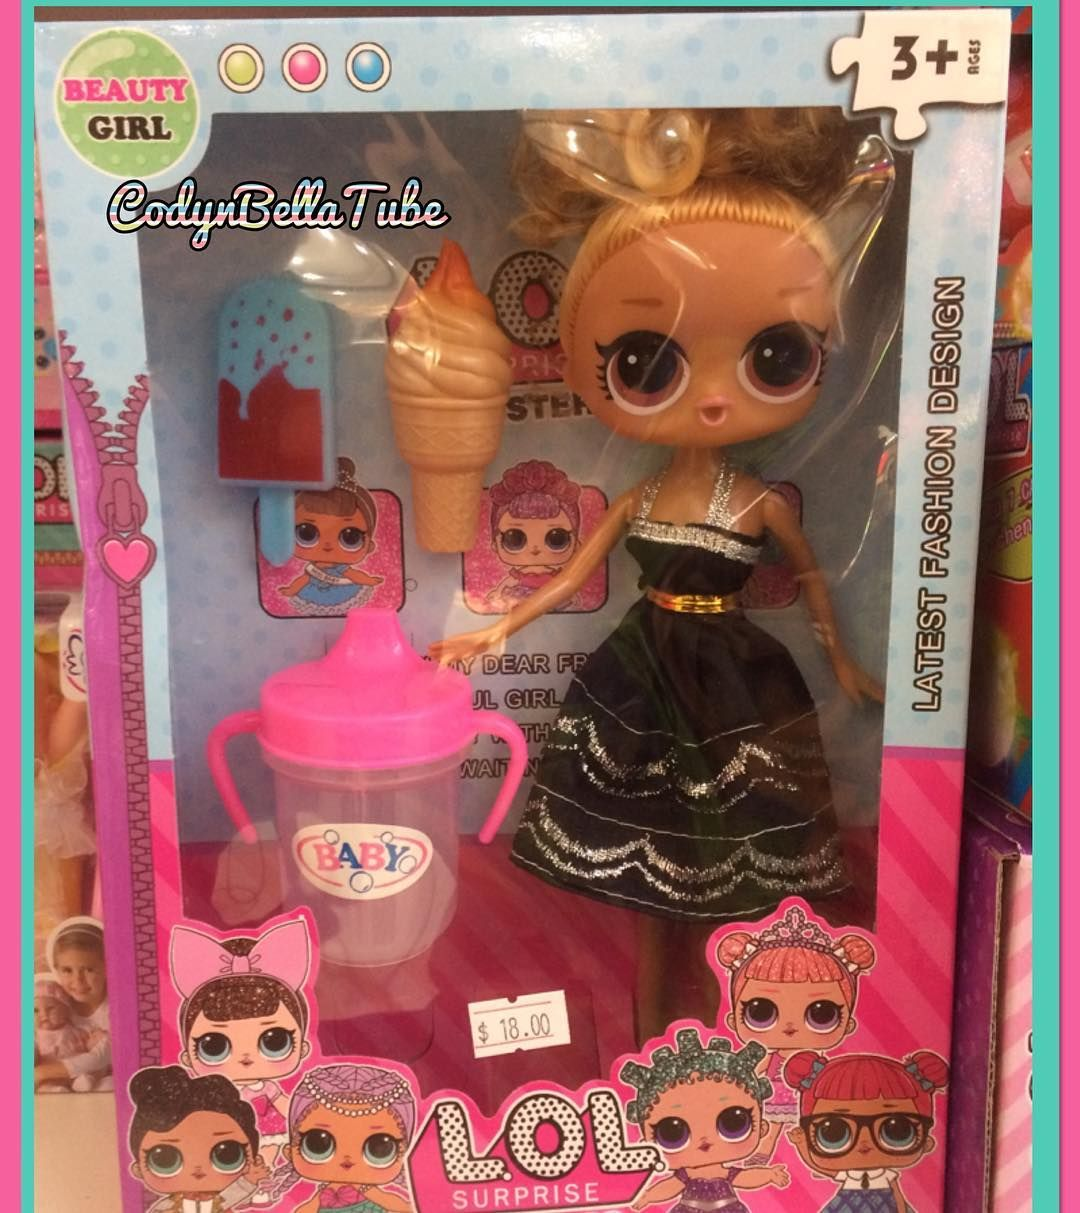 Fake Lol Doll Even Comes With A Baby Alive Bottle Lol Lolsurprise Lolsurpriseparty Lolsurprisedoll Lol Dolls Candy Land Birthday Party Baby Alive Dolls